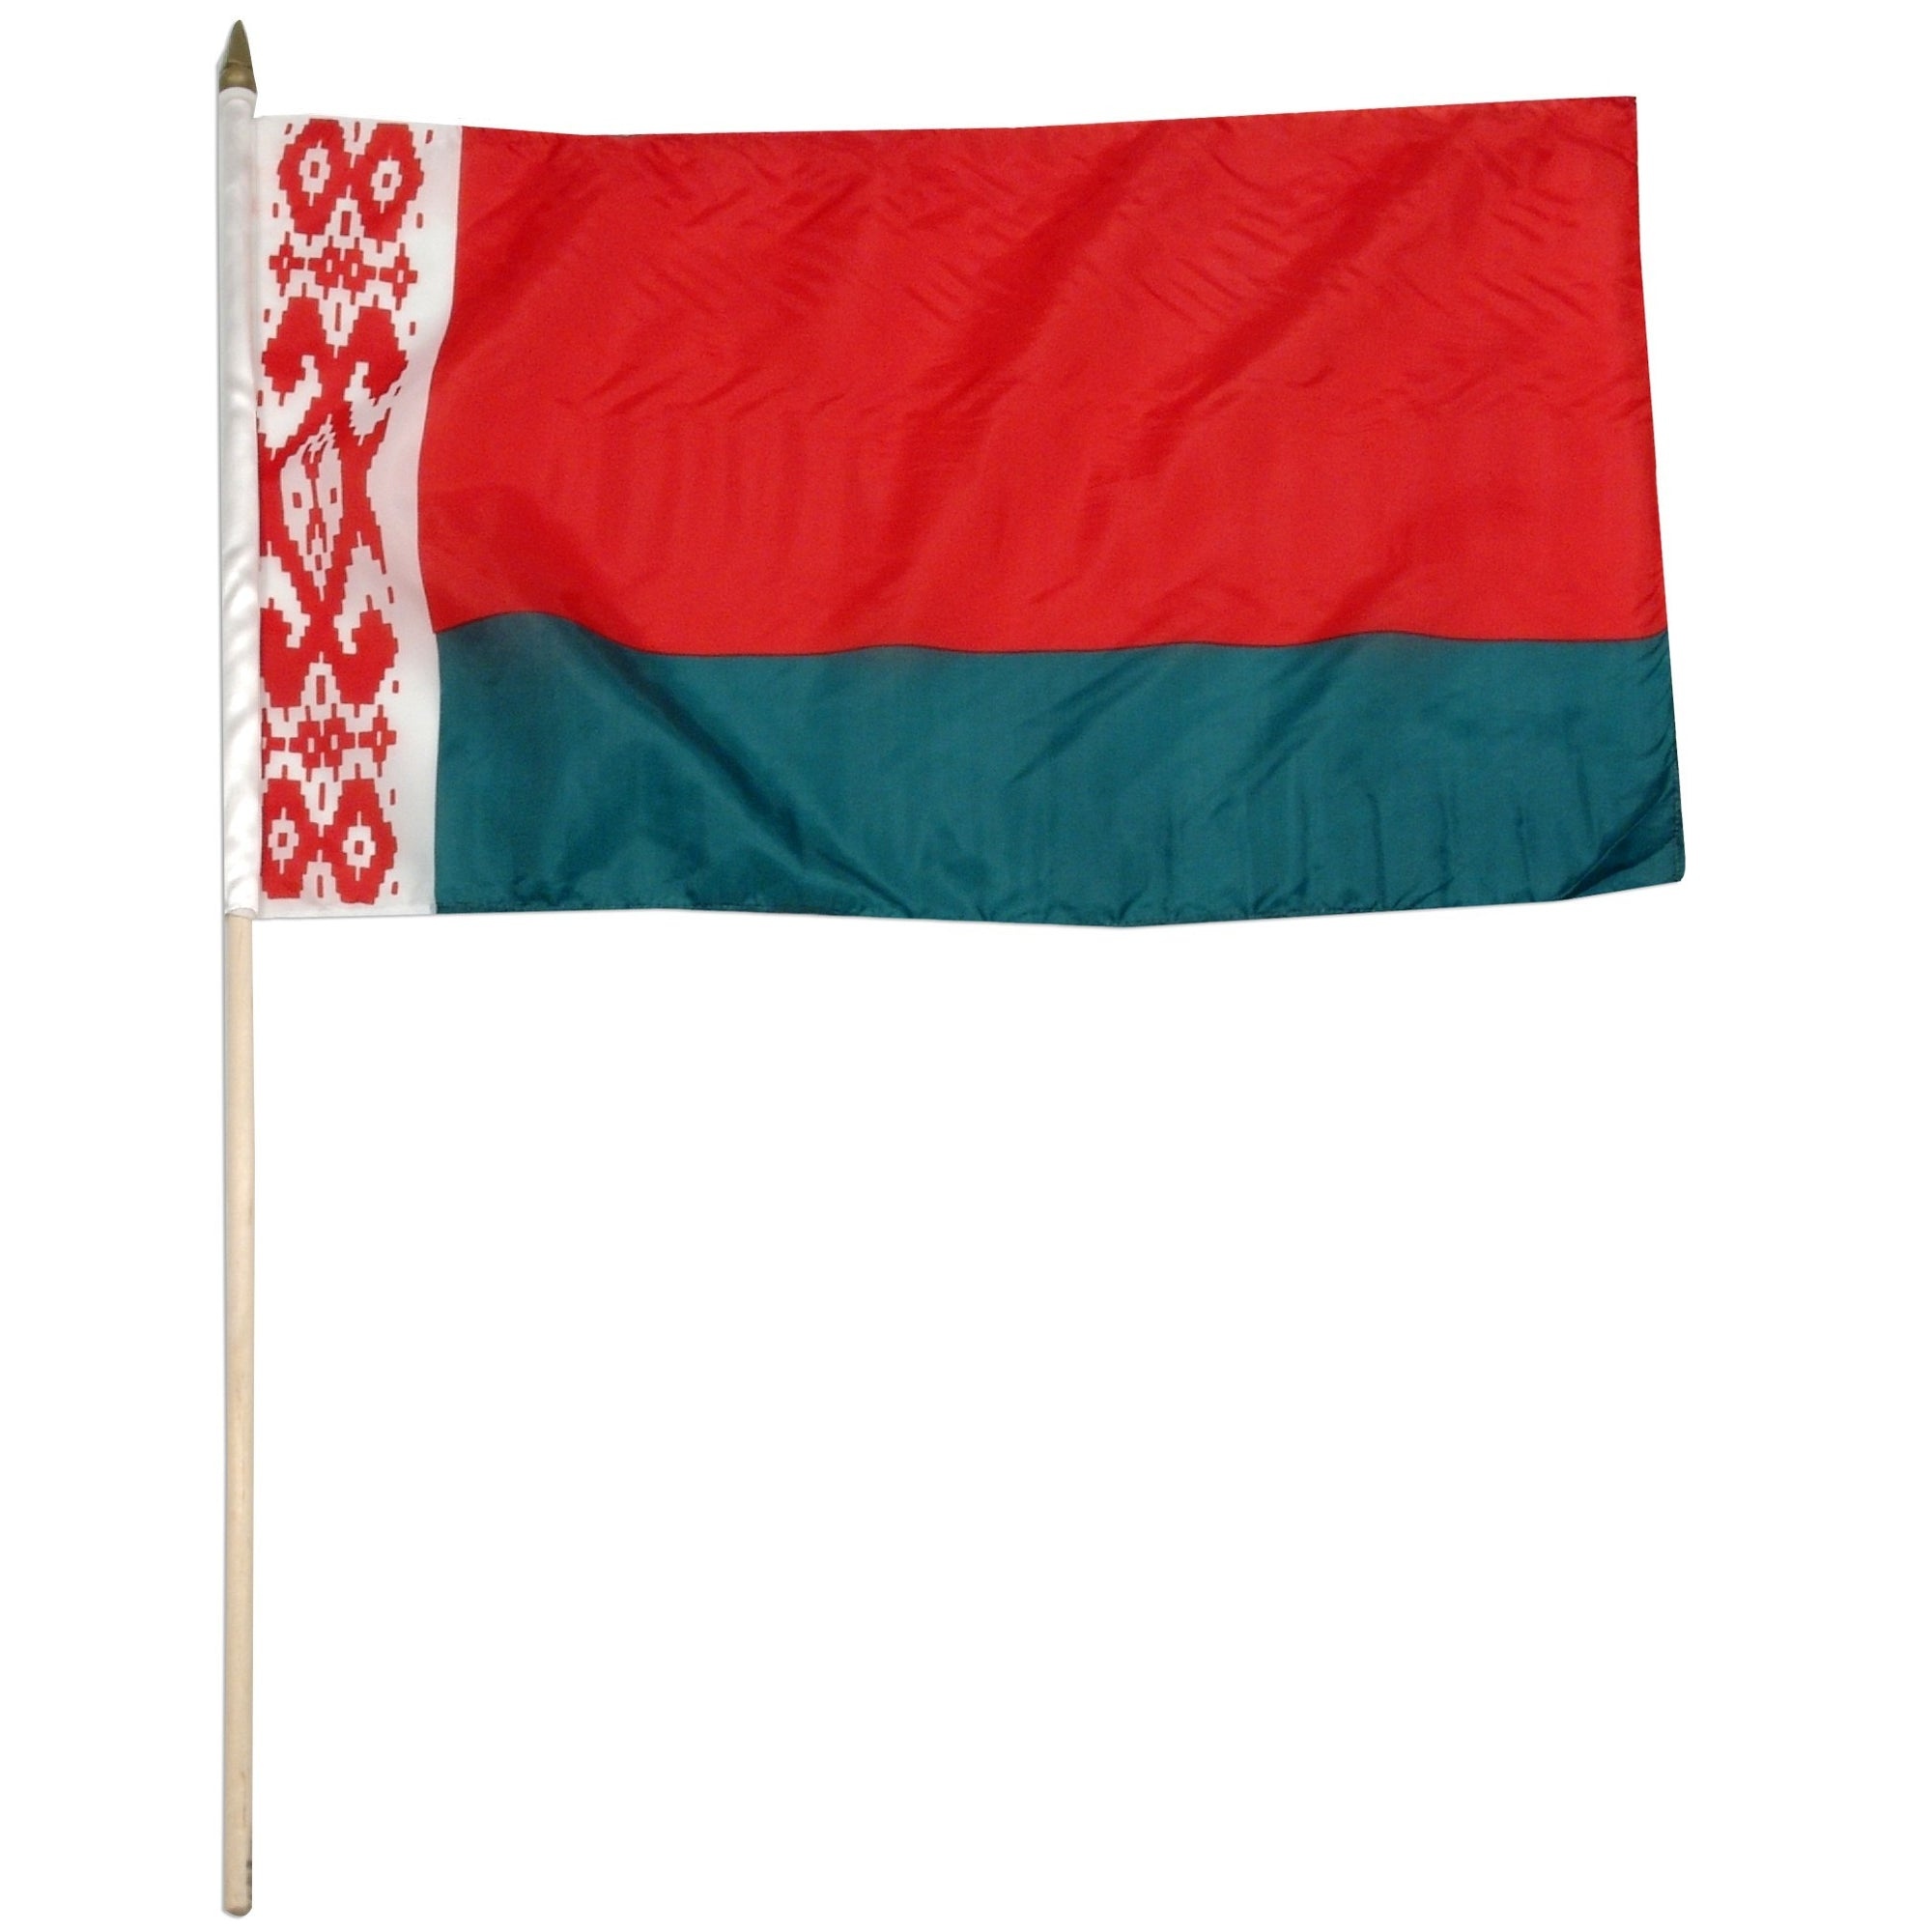 "Belarus 12"" x 18"" Mounted Flag"